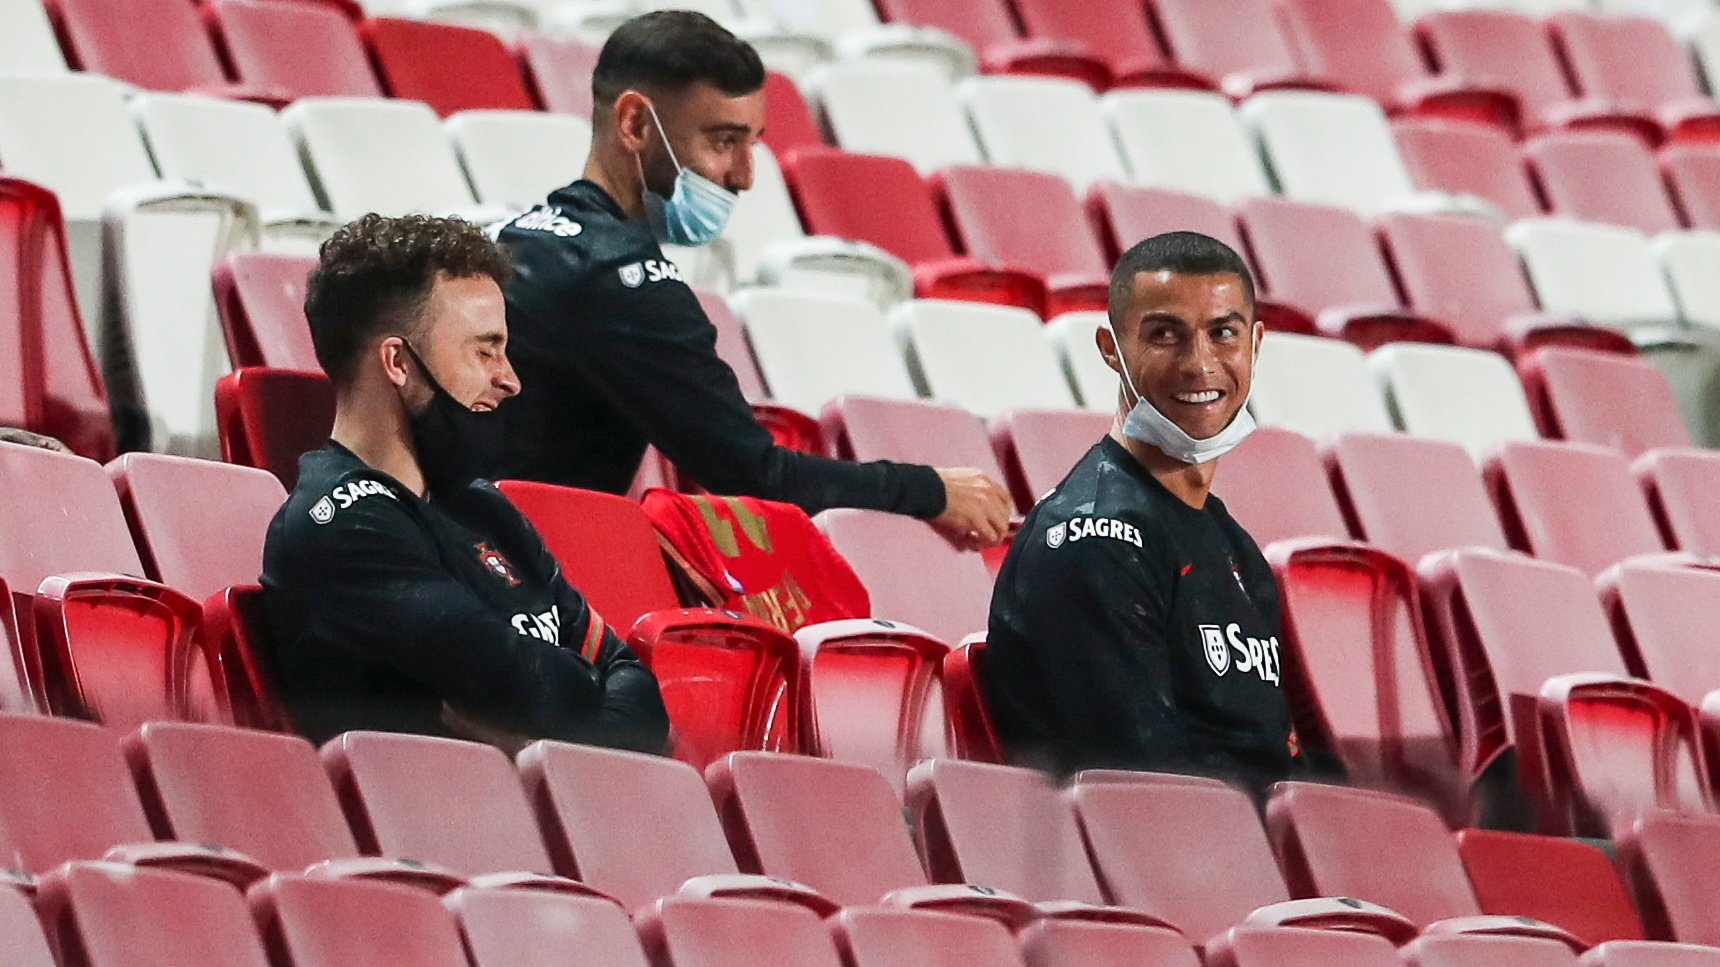 epa08814762 Portugal national team players Cristiano Ronaldo (R), Diogo Jota and Bruno Fernandes laugh in the stands prior to the friendly soccer match between Portugal and Andorra, held at Luz stadium in Lisbon, Portugal, 11 November 2020.  EPA/JOSE SENA GOULAO